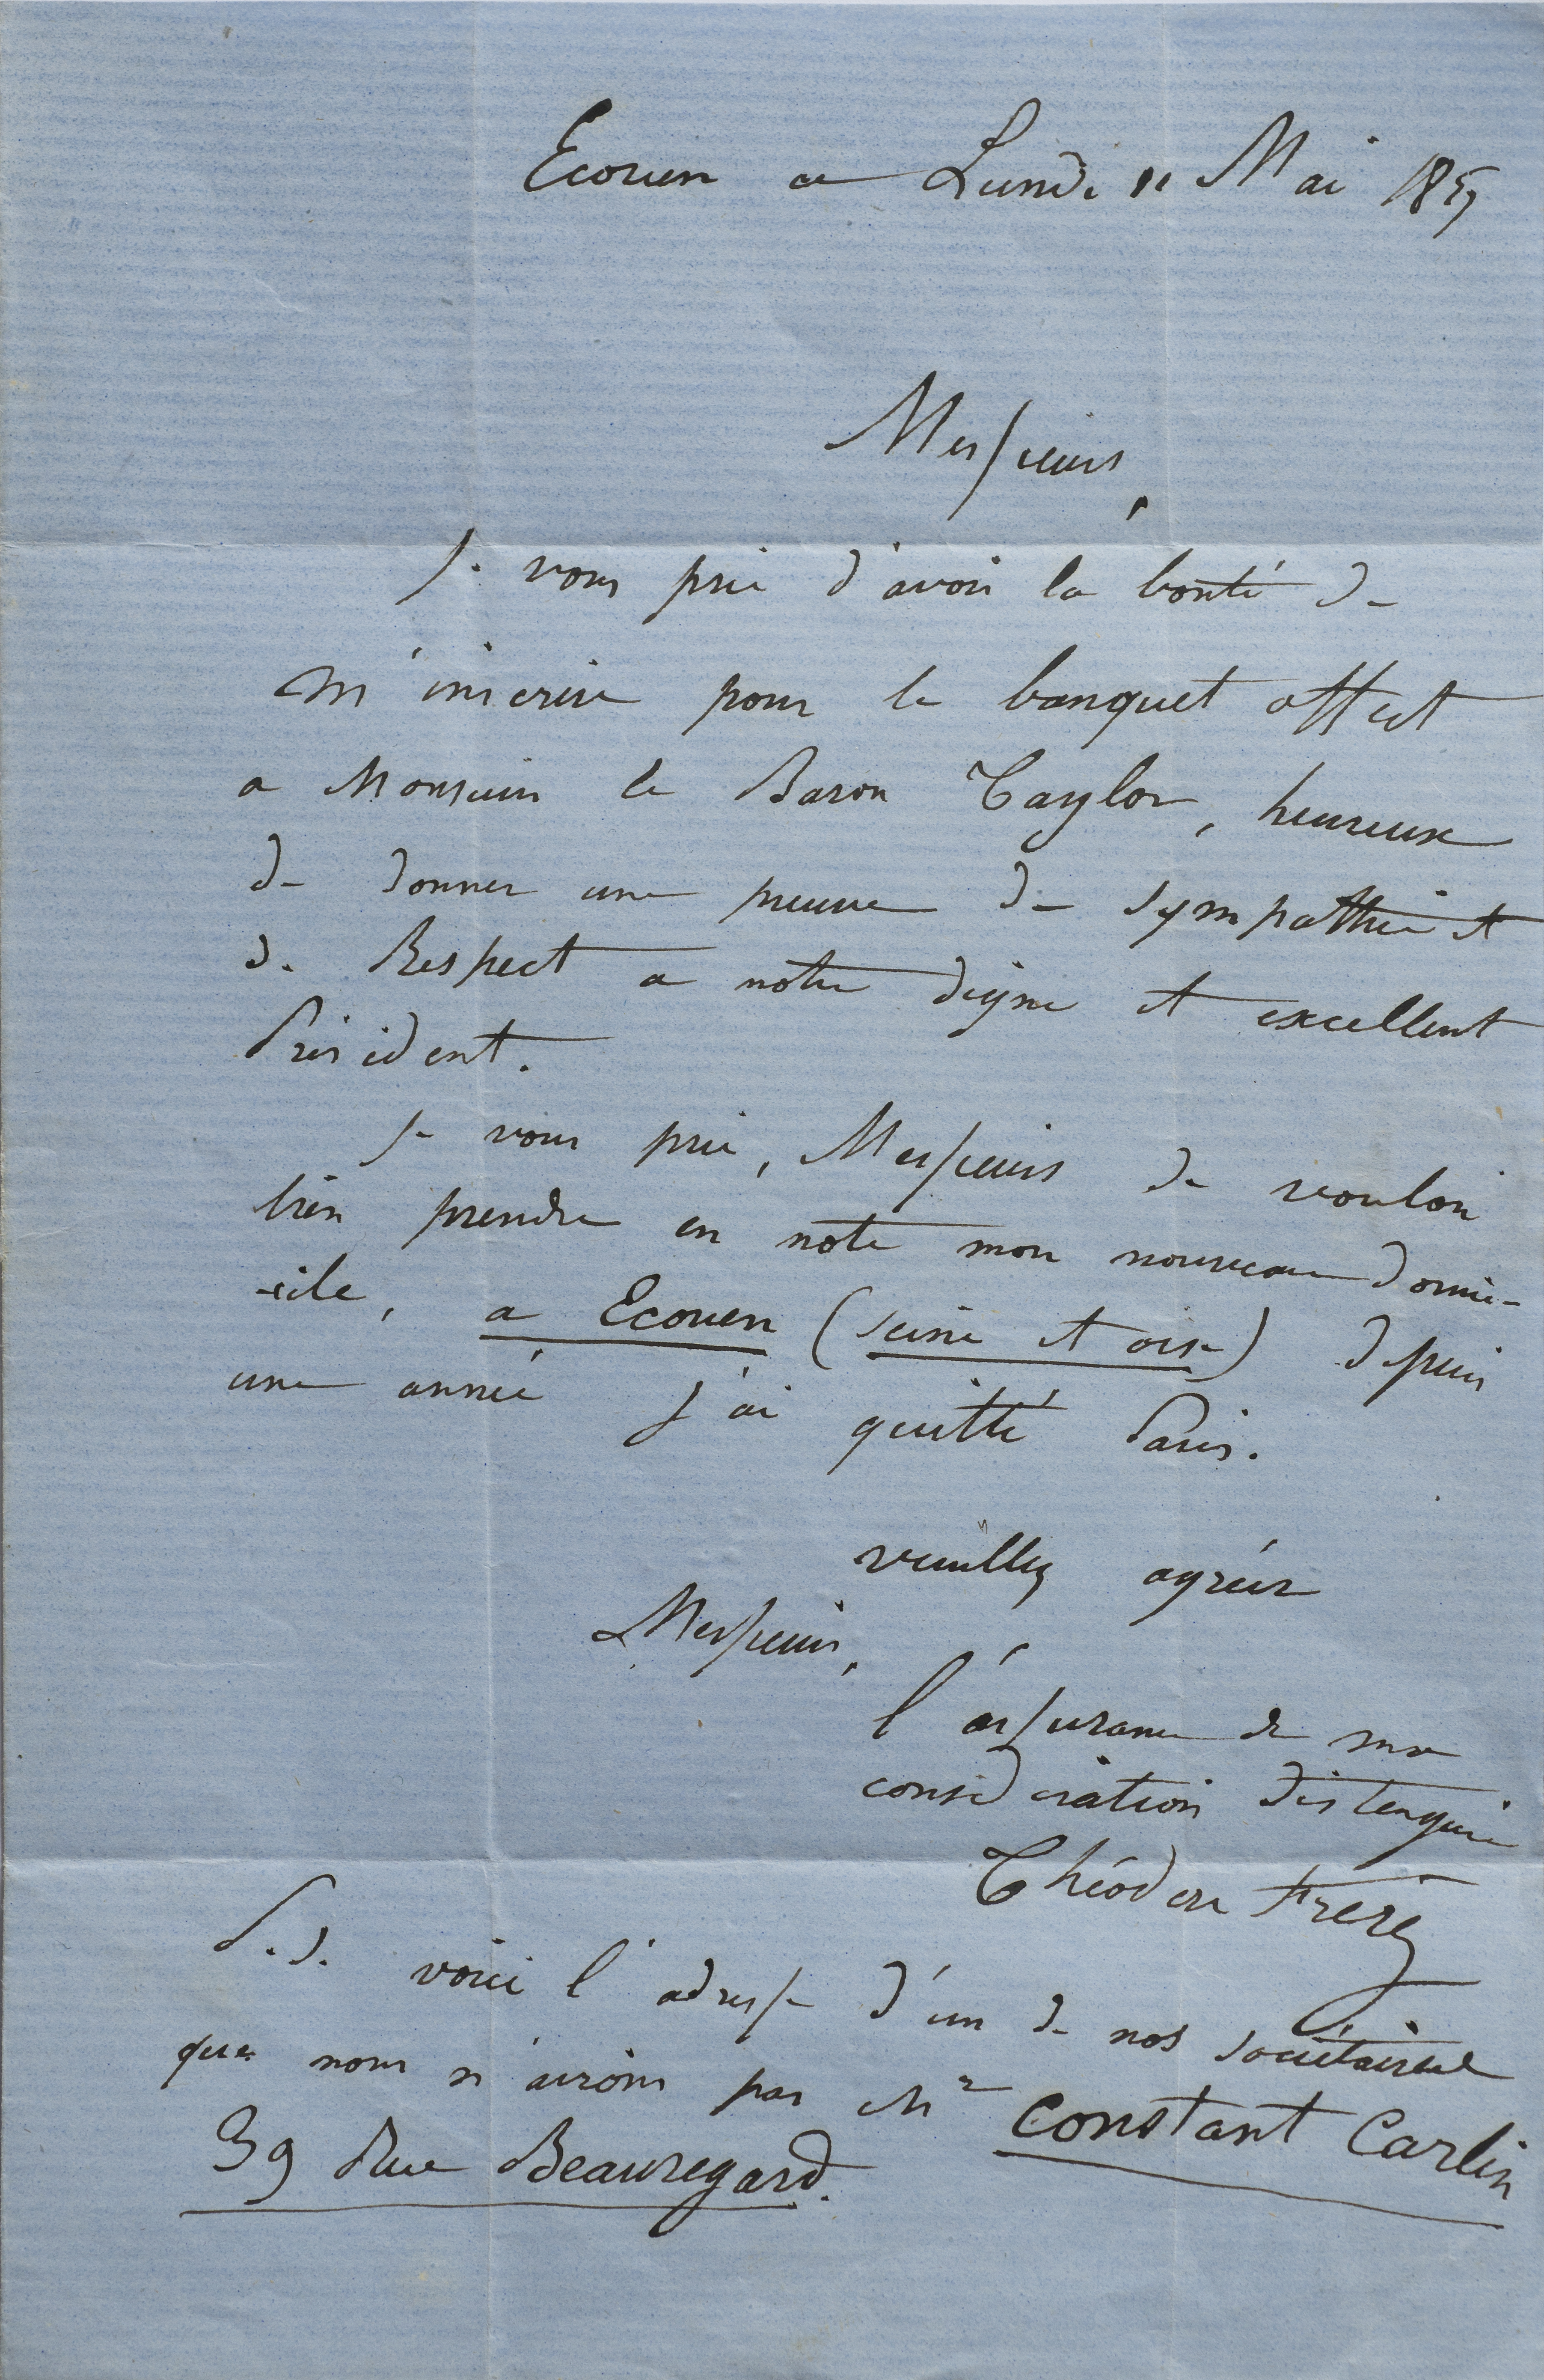 Letter written in Ecouen